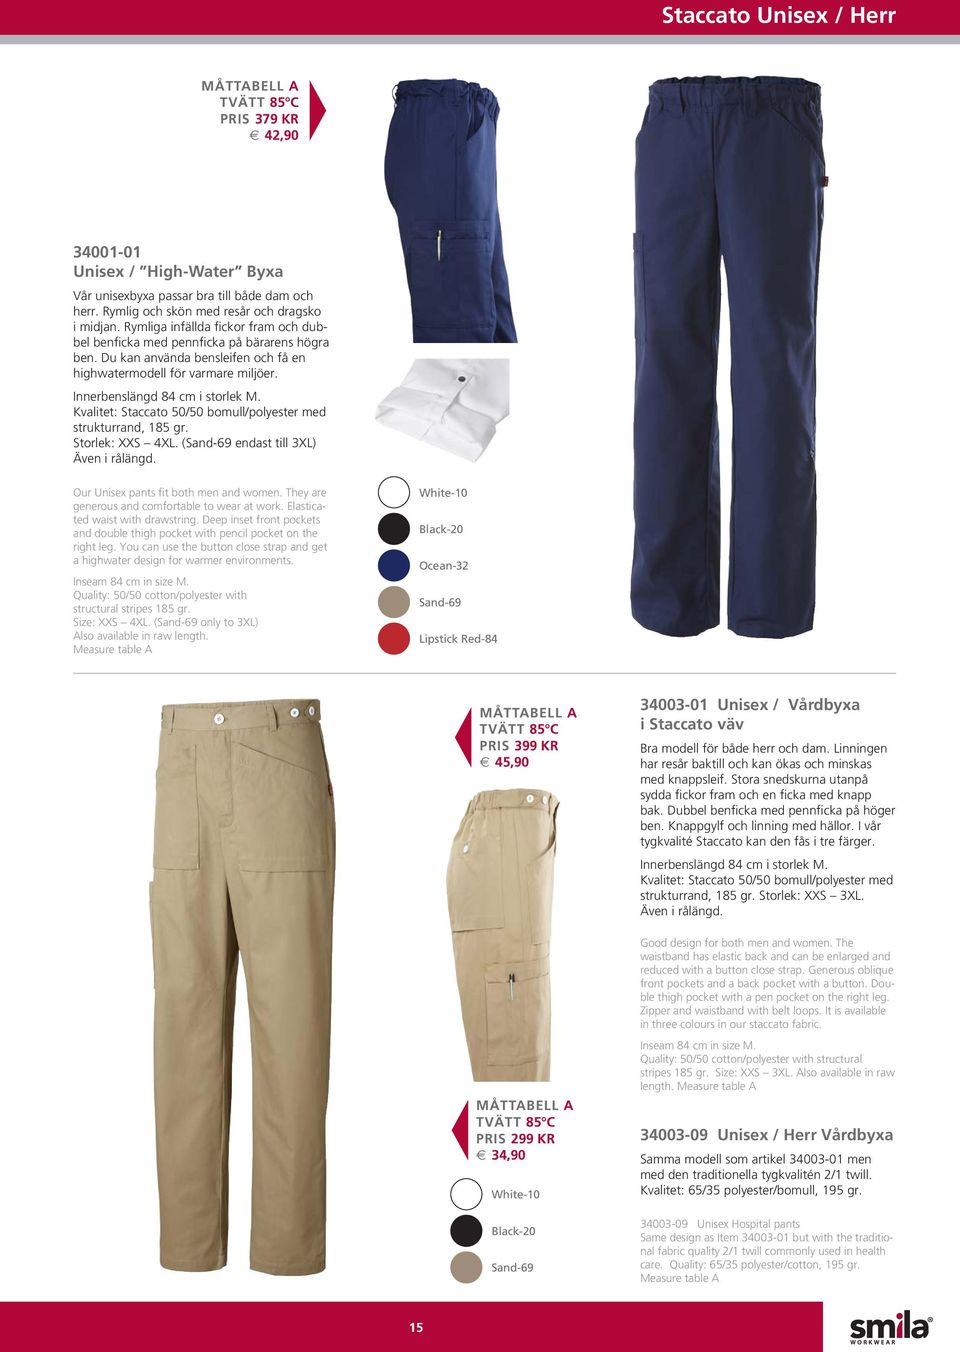 Kvalitet: Staccato 50/50 bomull/polyester med strukturrand, 185 gr. Storlek: XXS 4XL. (Sand-69 endast till 3XL) Även i rålängd. Our Unisex pants fit both men and women.